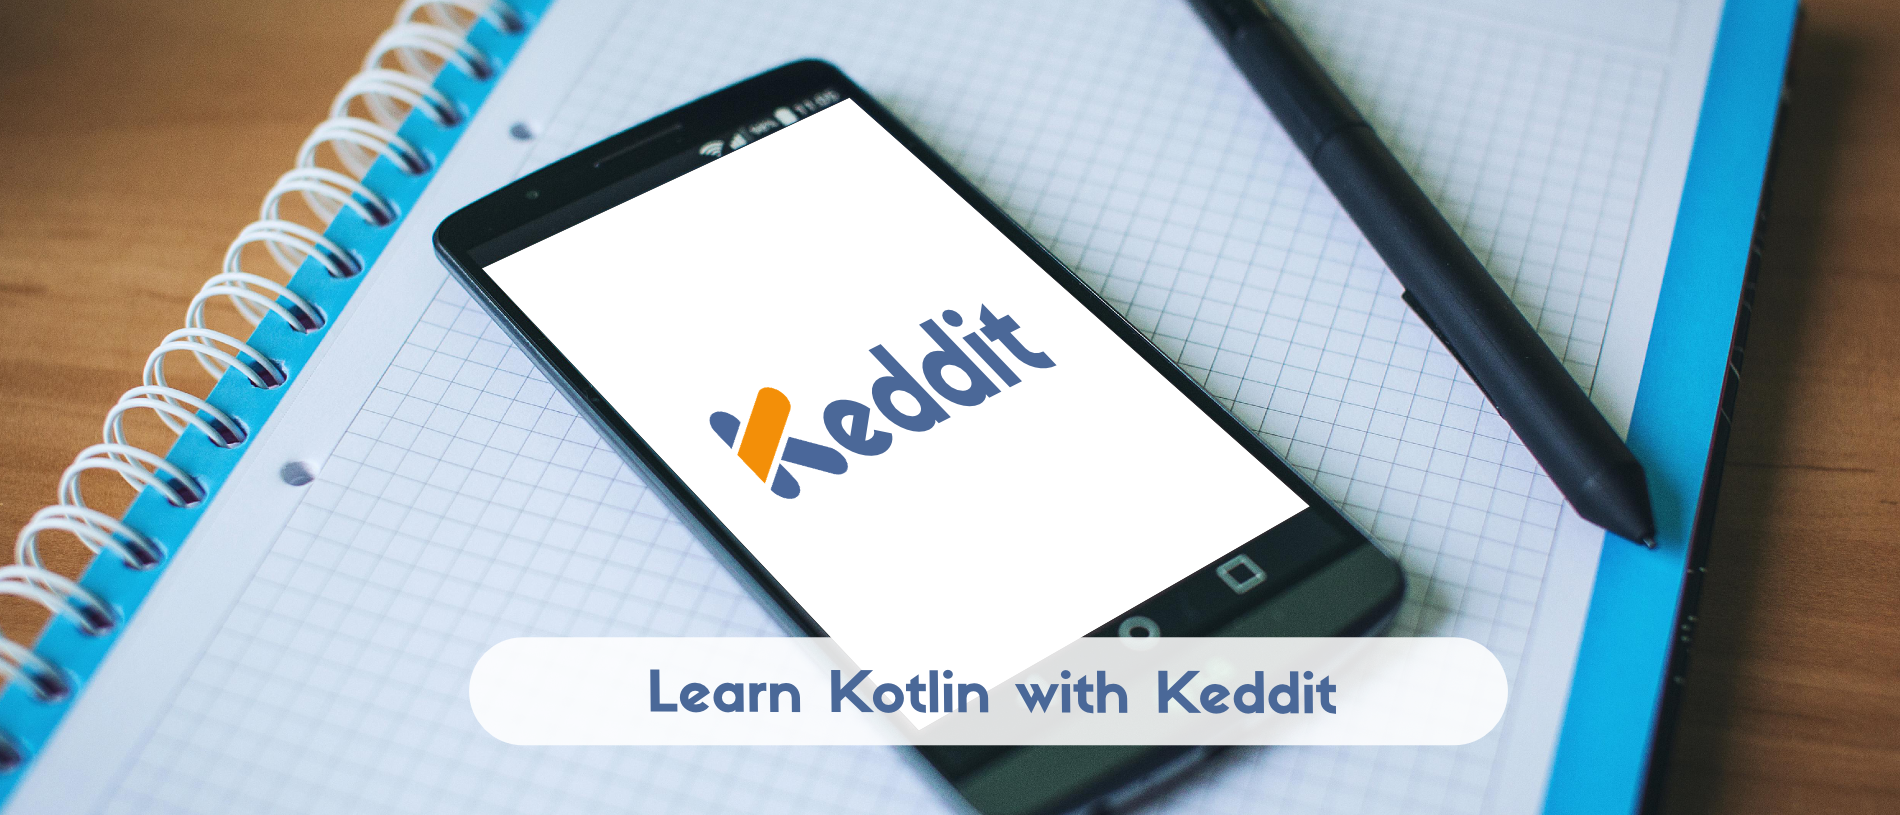 Keddit — Part 3: Extension Functions, Android Extensions and